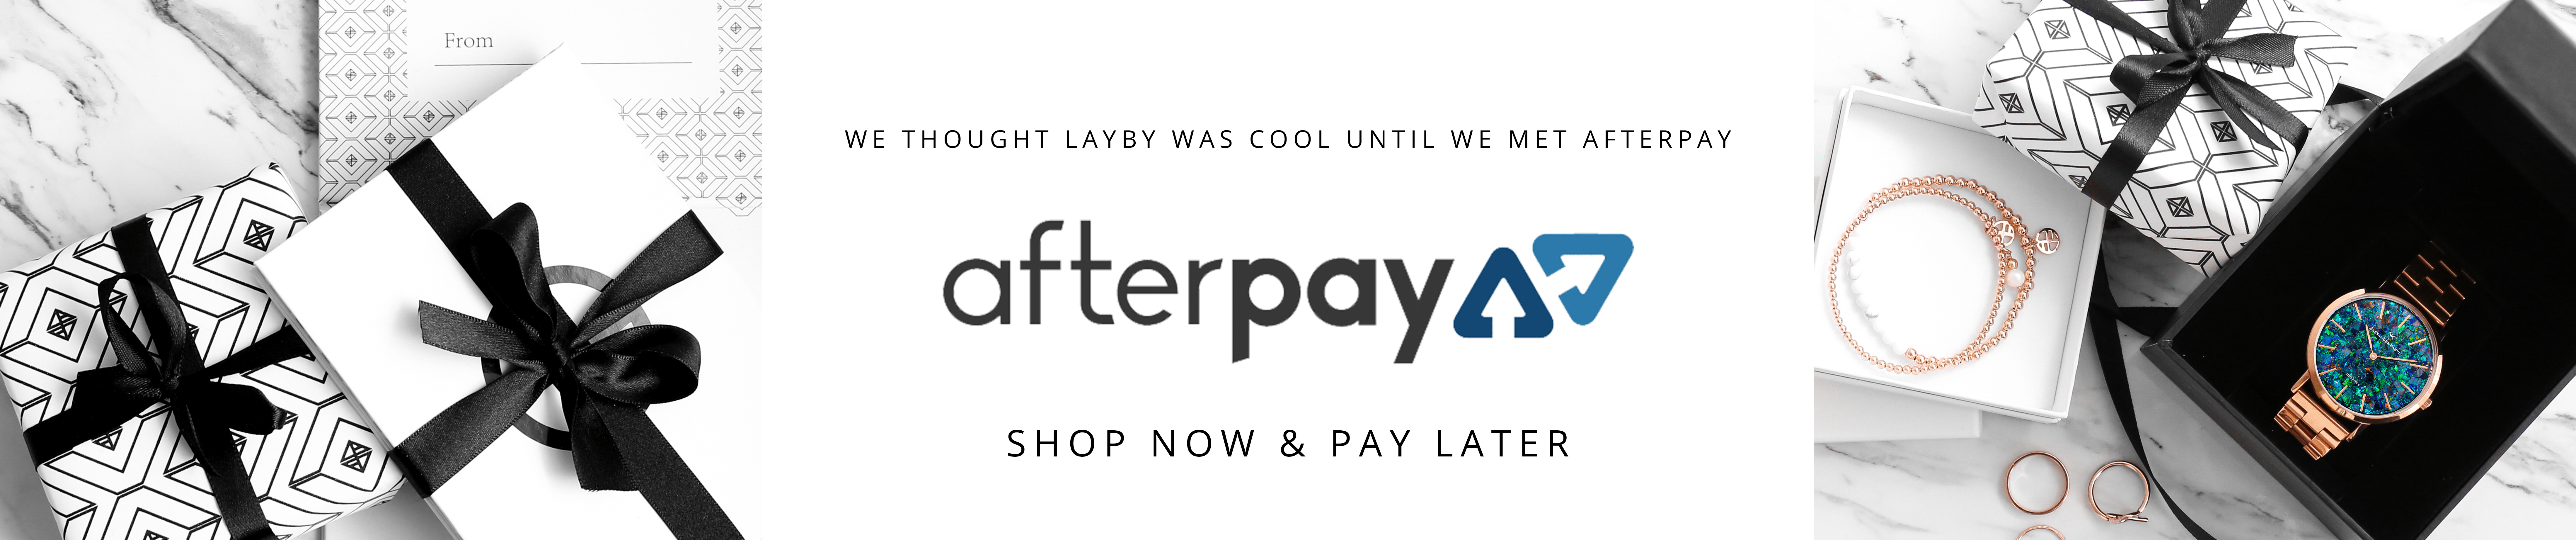 AFTERPAY-BANNER AUSTRAL STONES OPAL